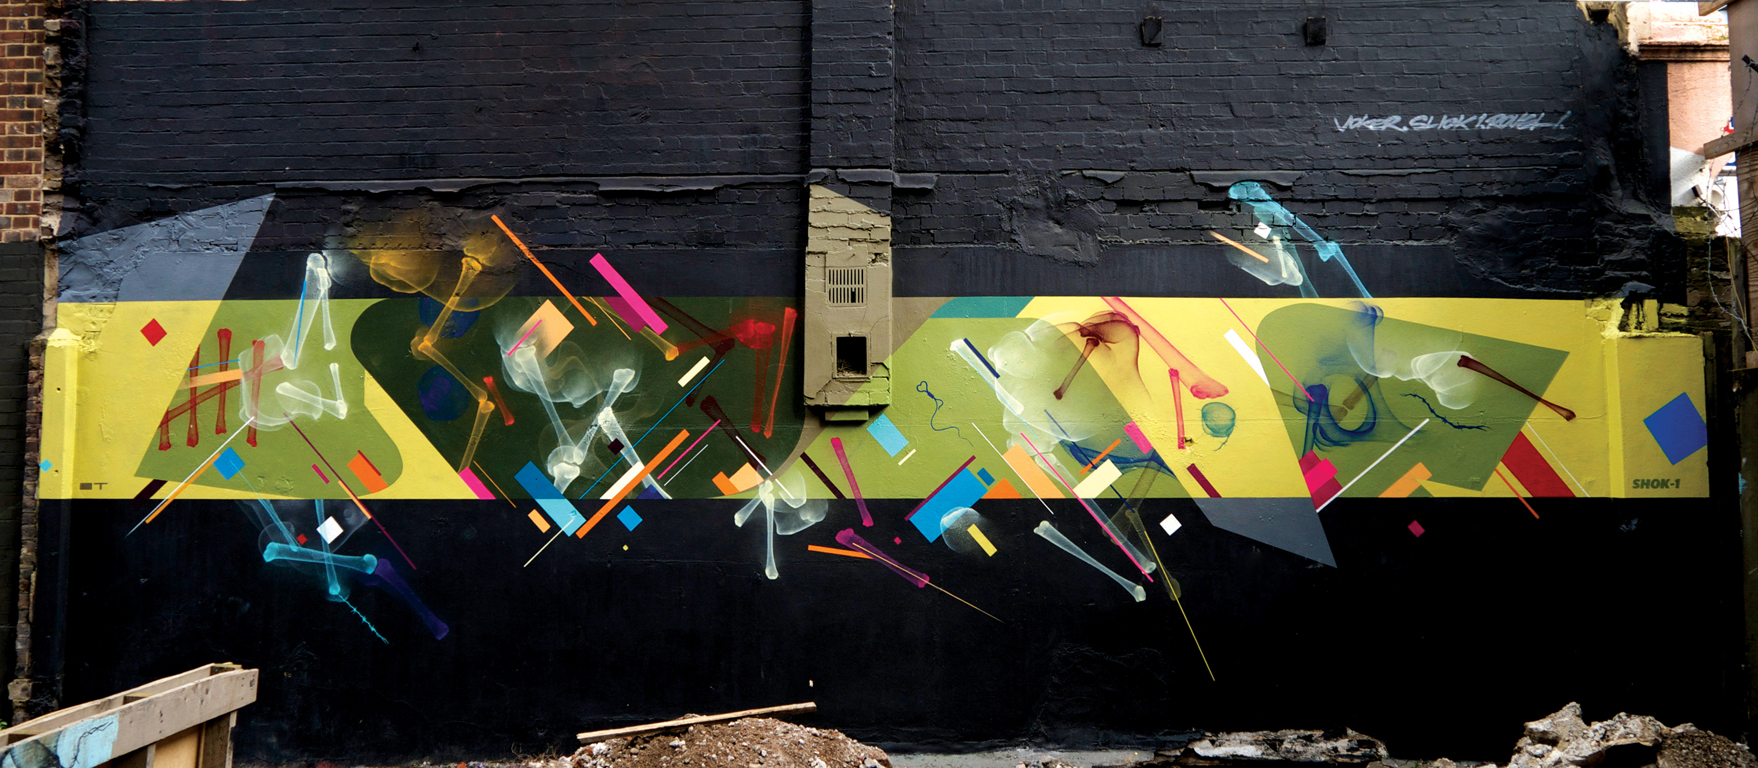 Layered mural -  2012 Collaboration with Joker and Shok-1 London